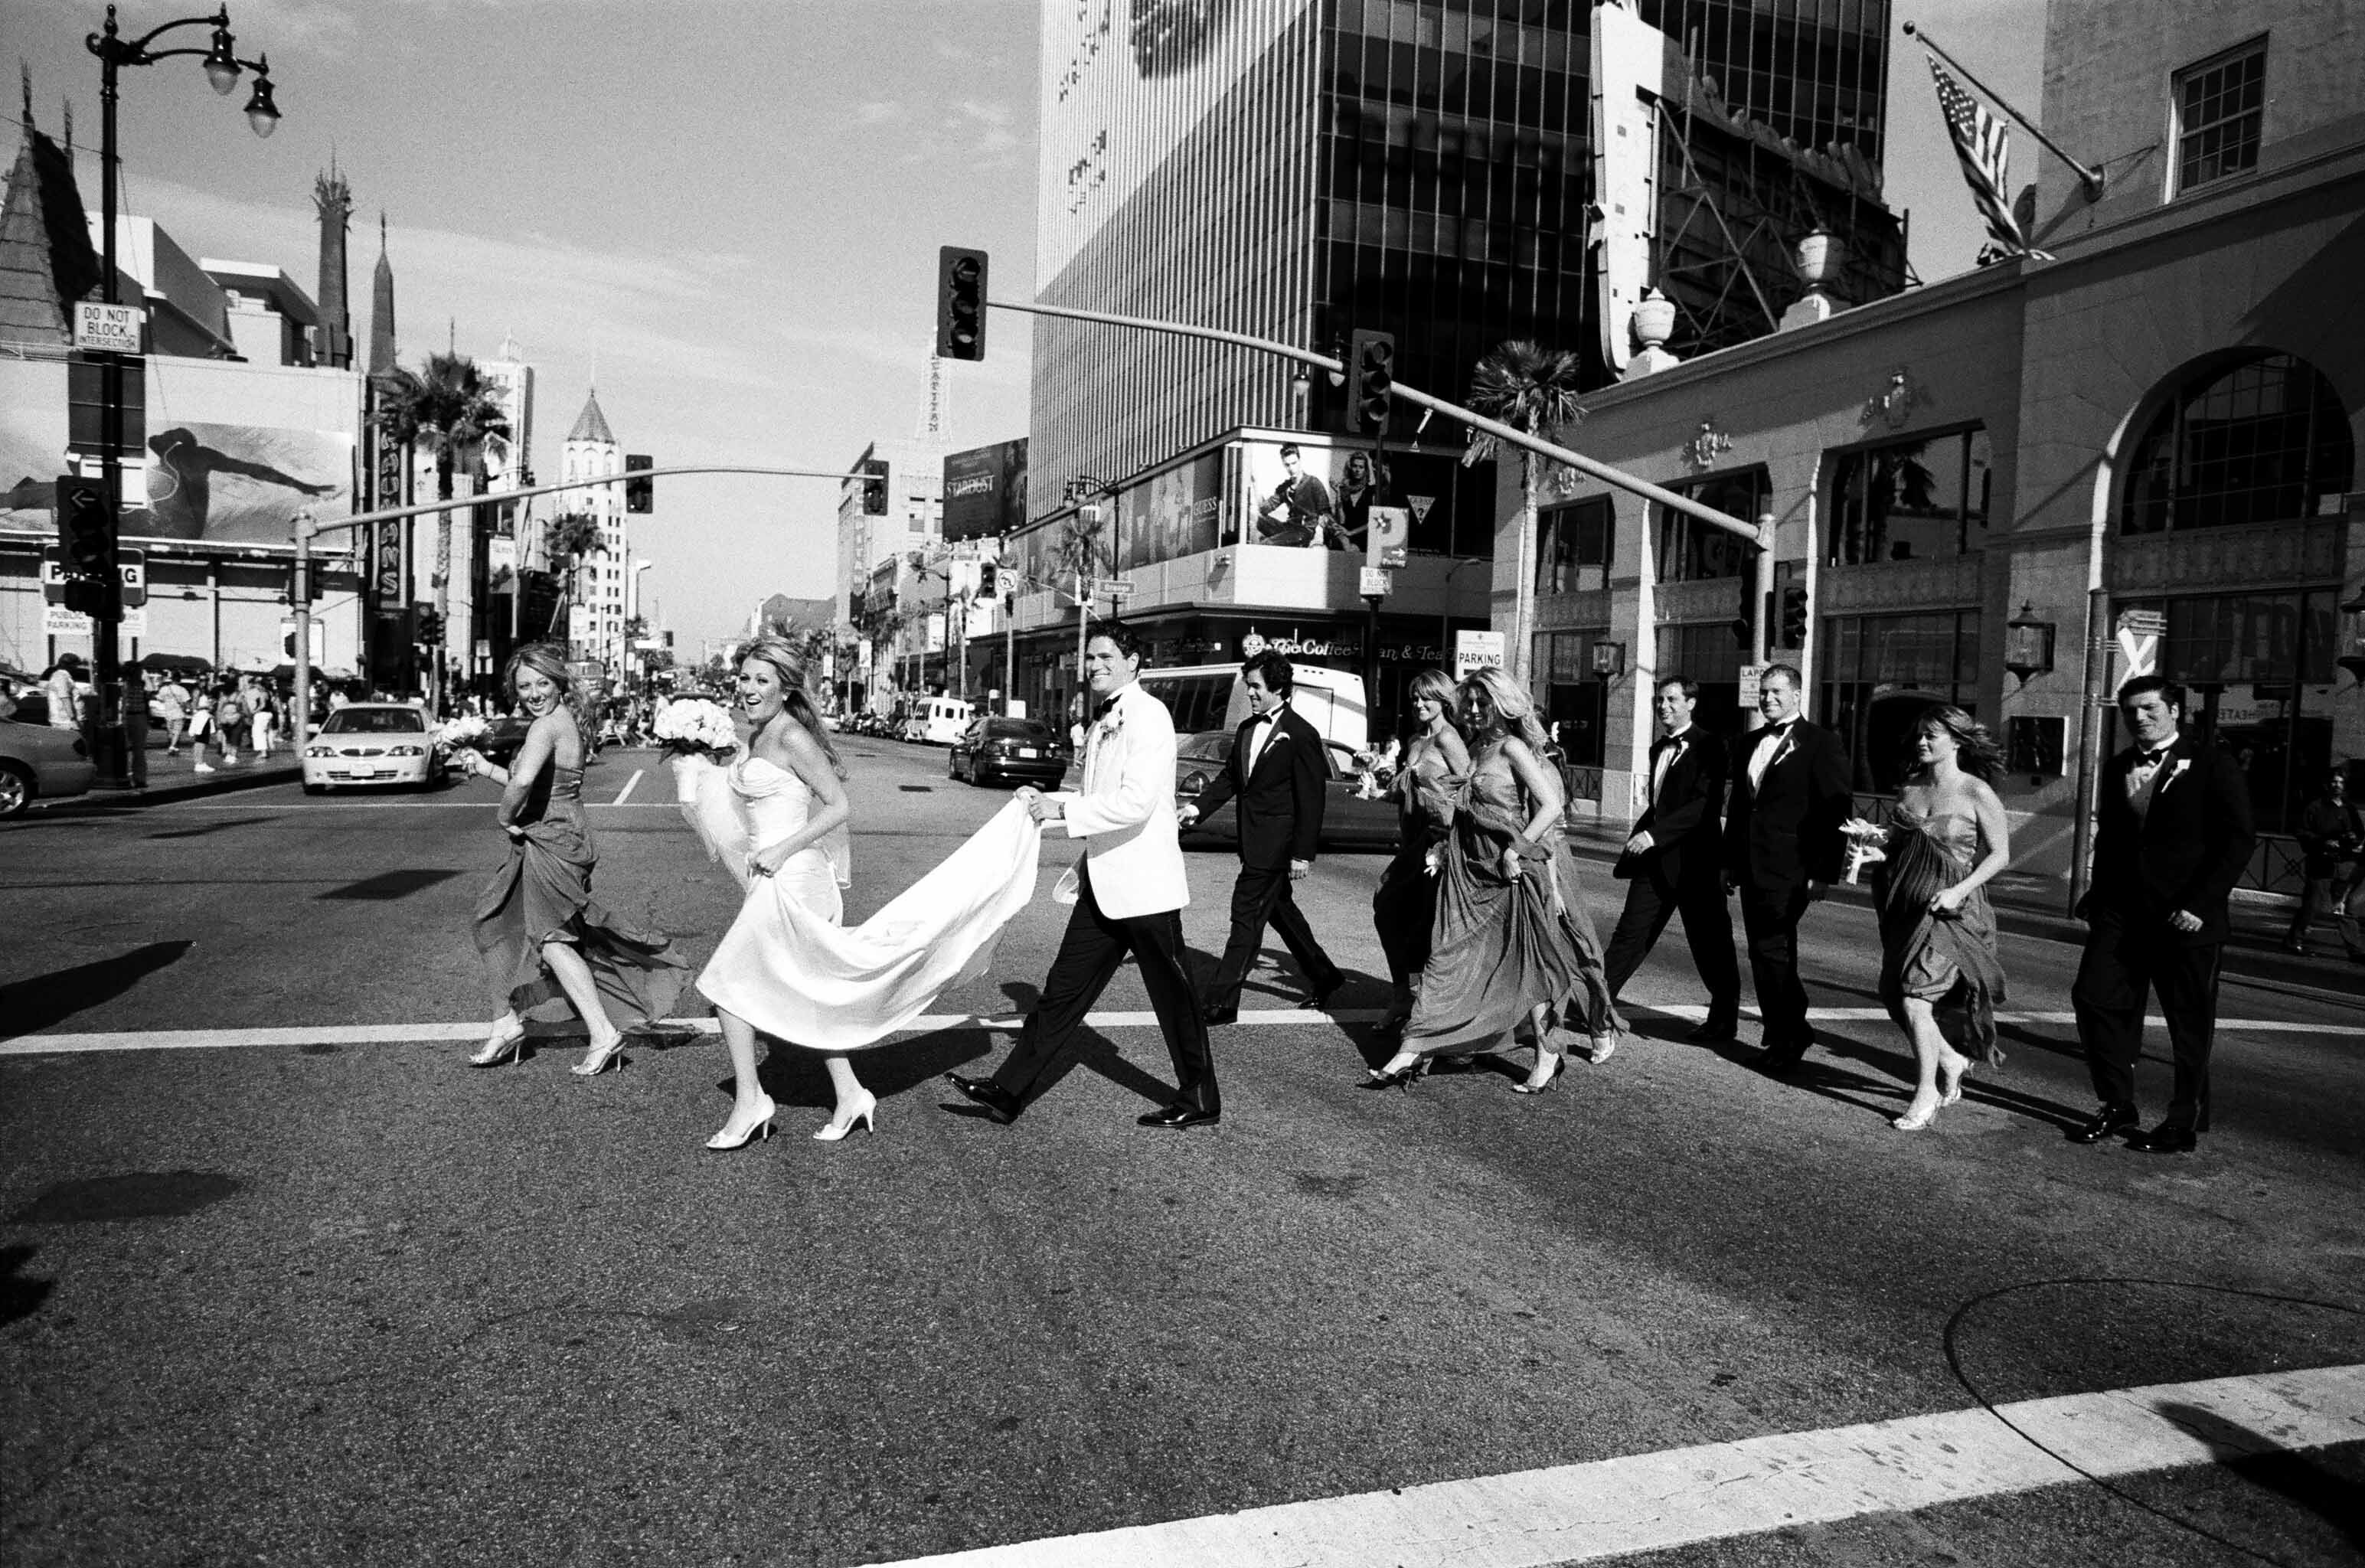 Wedding Dresses, Fashion, dress, Bride, Groom, Portrait, Candid, Running, Posed, Roosevelt, Hollywood boulevard